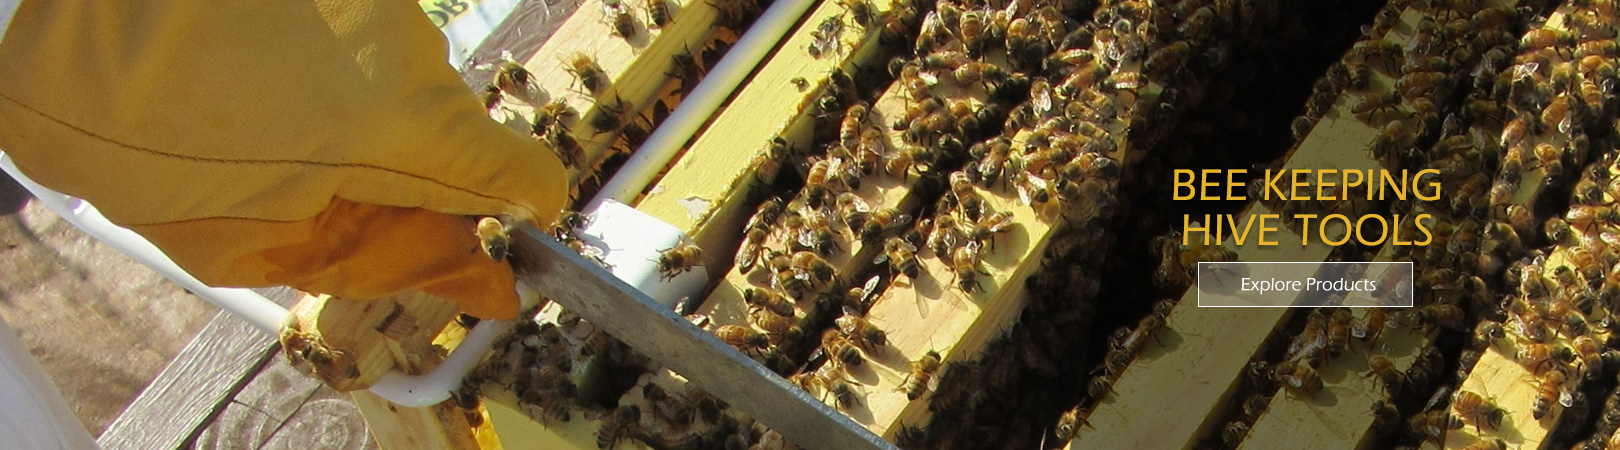 Manufacturers and Exporters beekeeping hivetools